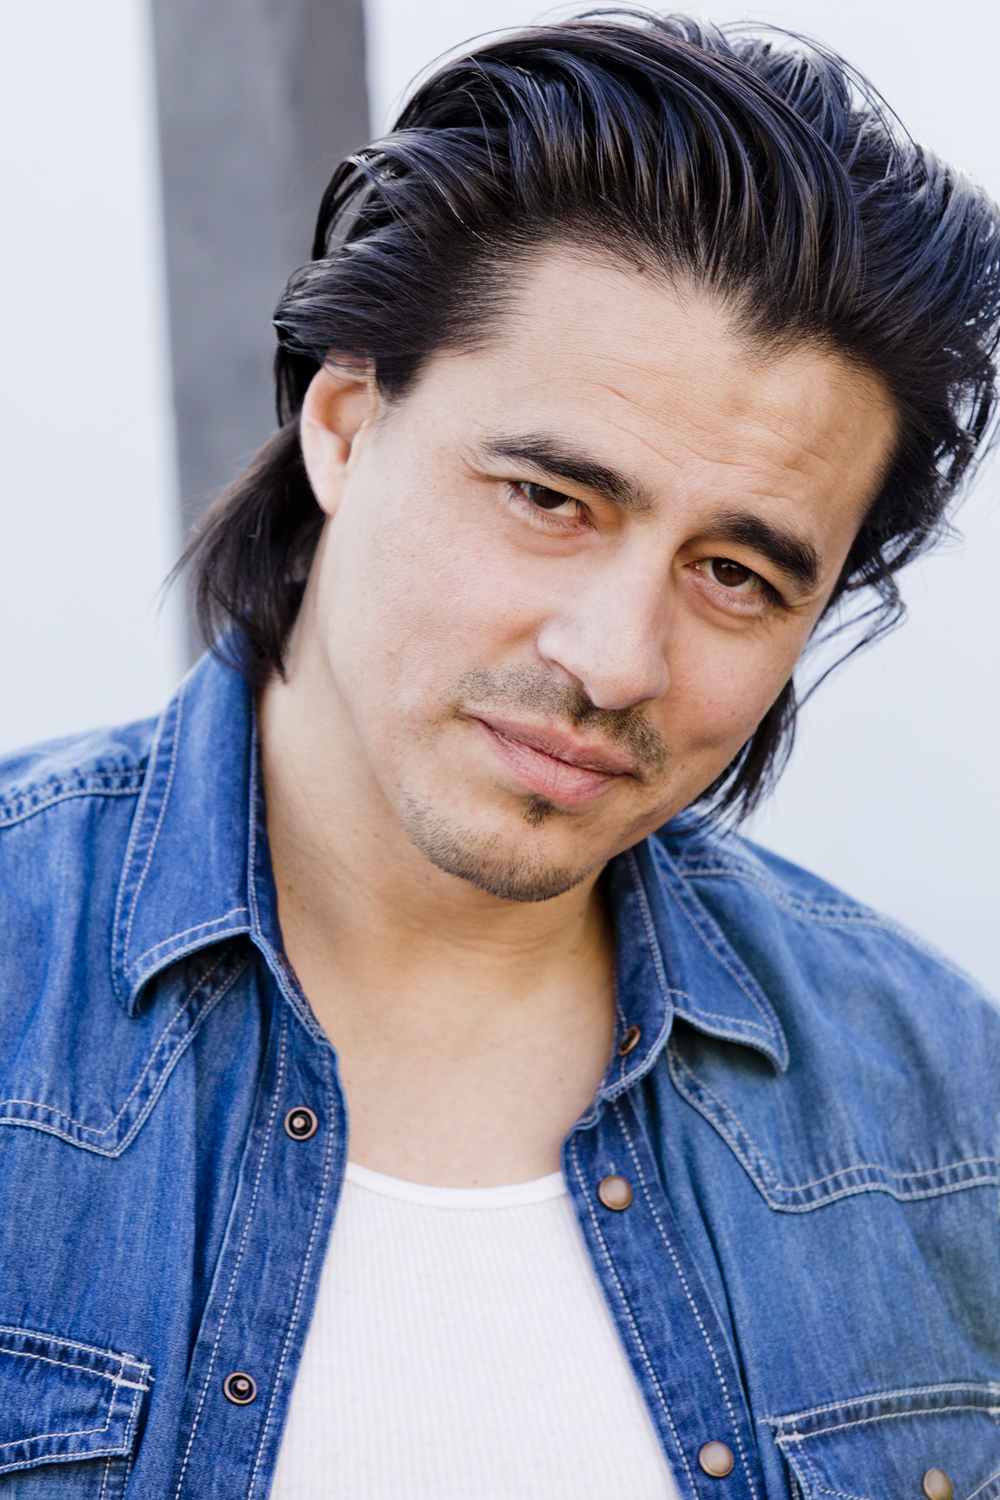 Antonio Jaramillo/By William Cole